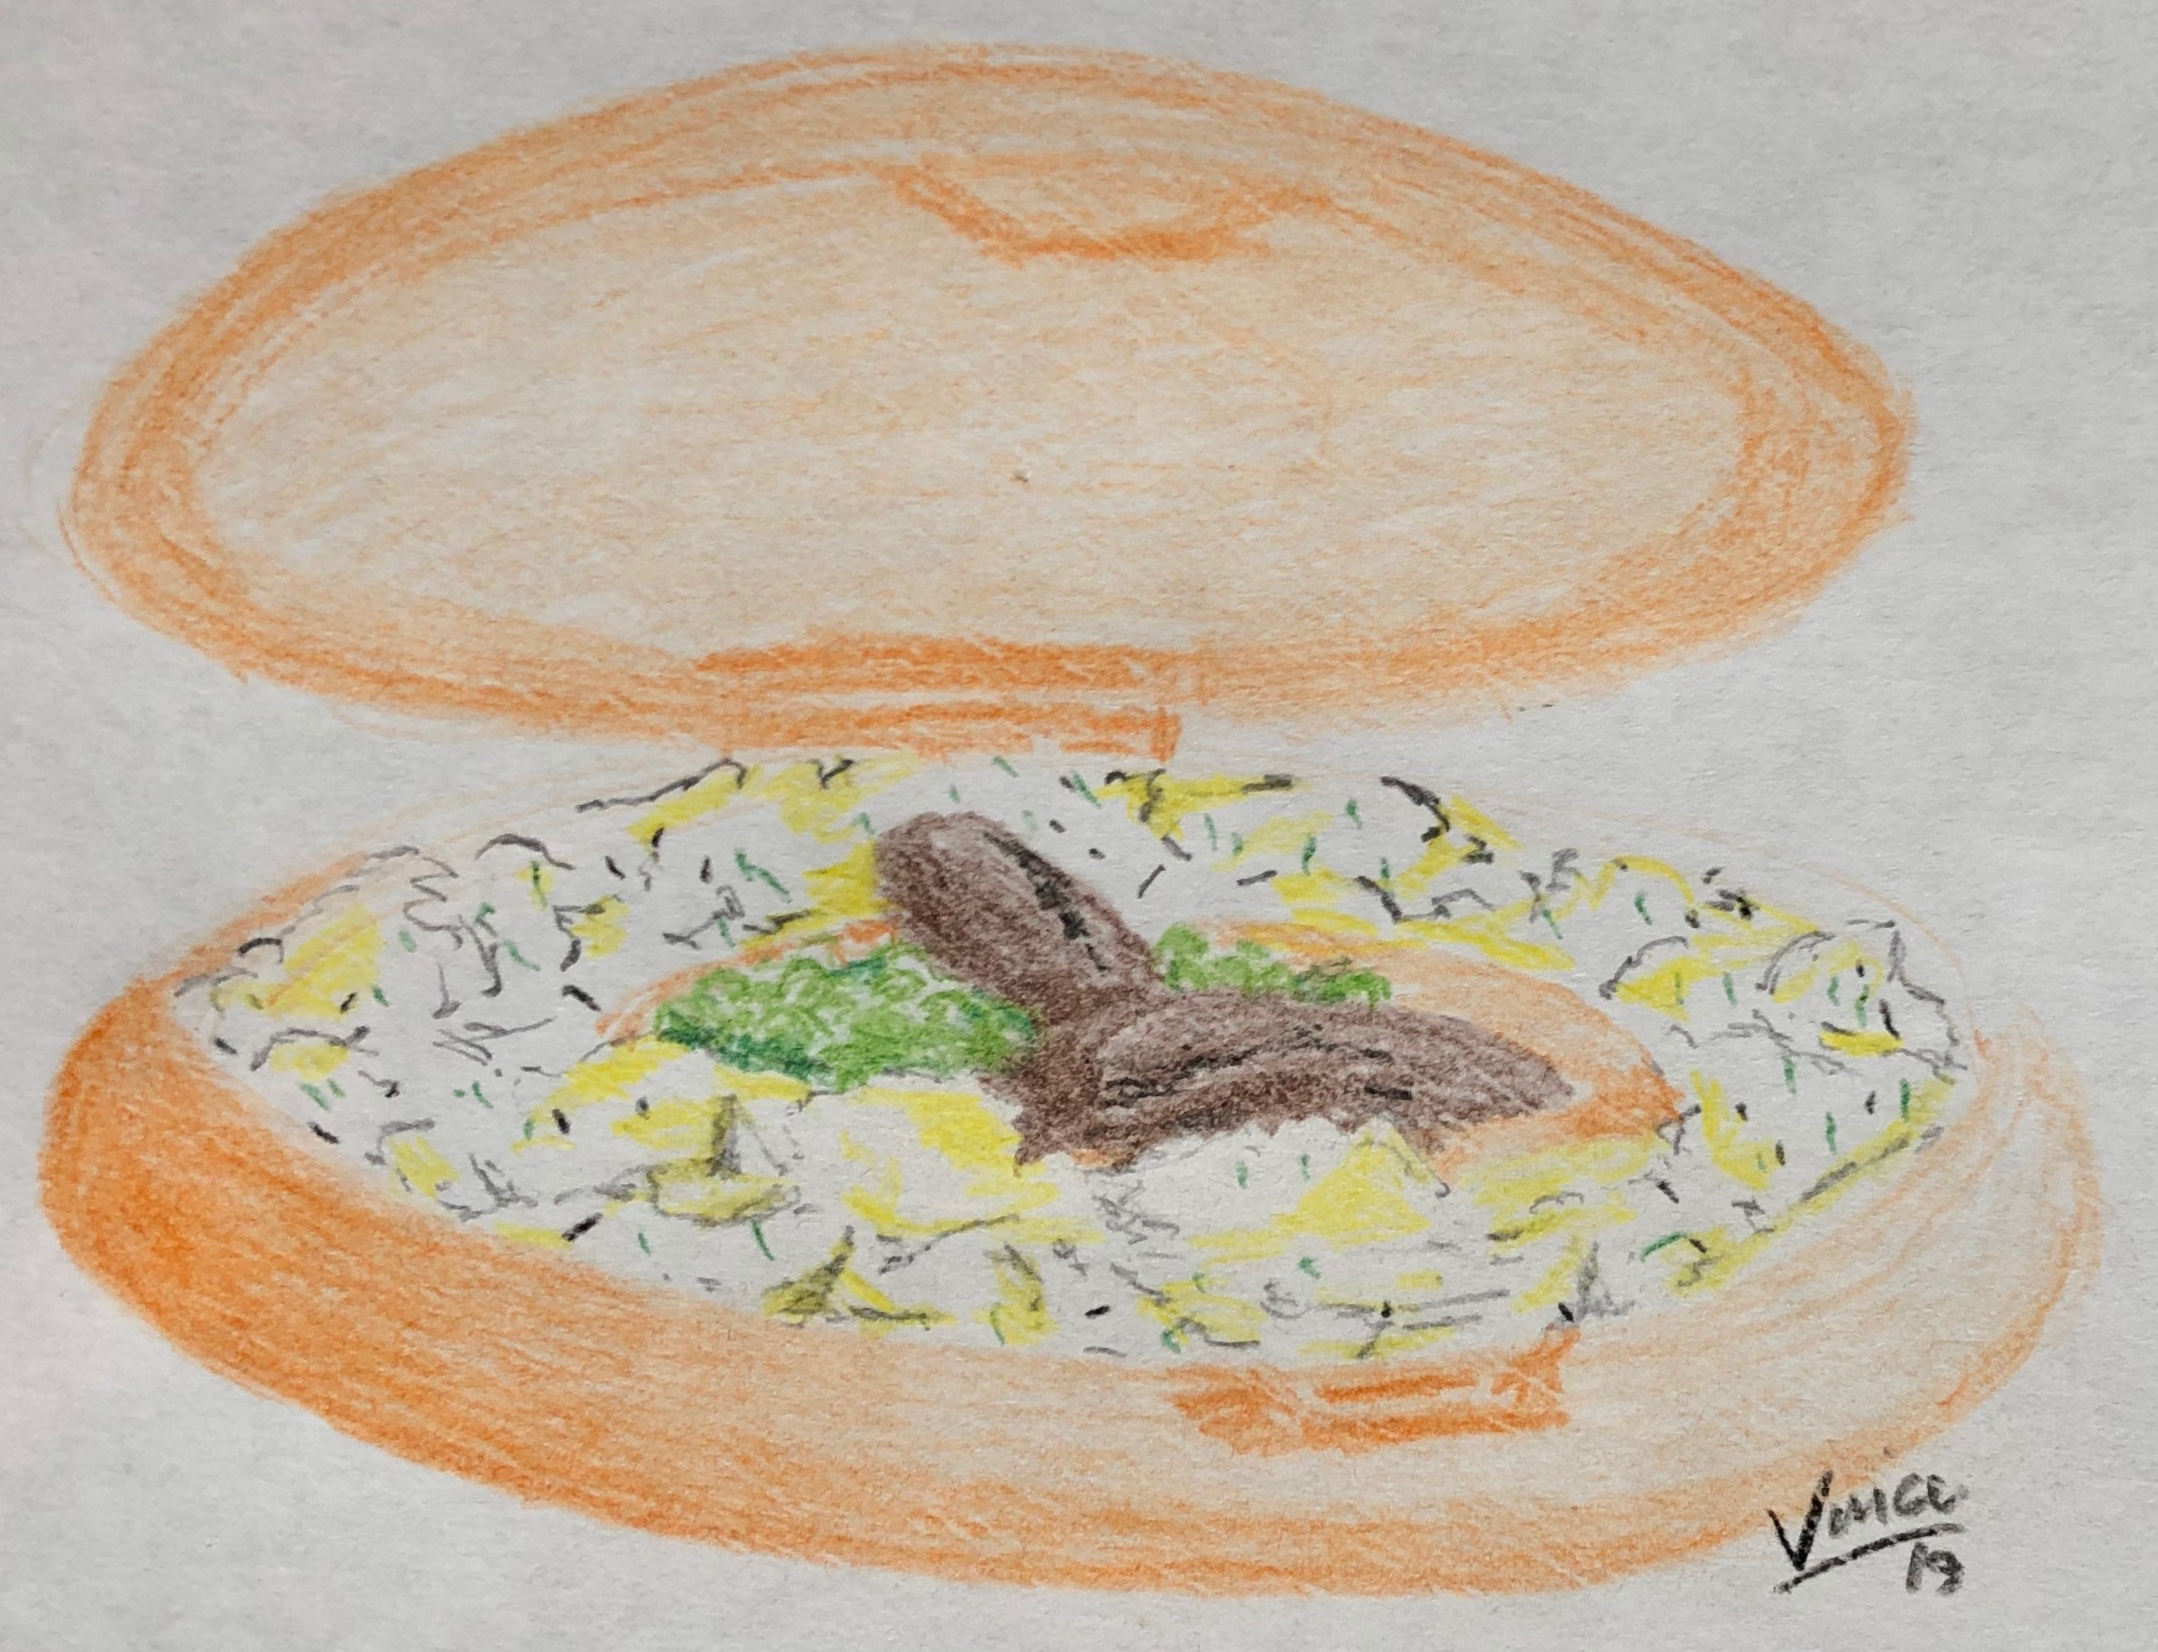 A hand drawn coloured pencil sketch of a potential ring-o-mash serving showing a ring of mashed potato in an originally designed circular polystyrene container.  Within the ring of mash a pair of sausages are shown along with a serving of green peas. The drawing is signed and dated at the bottom right as Vince 19.